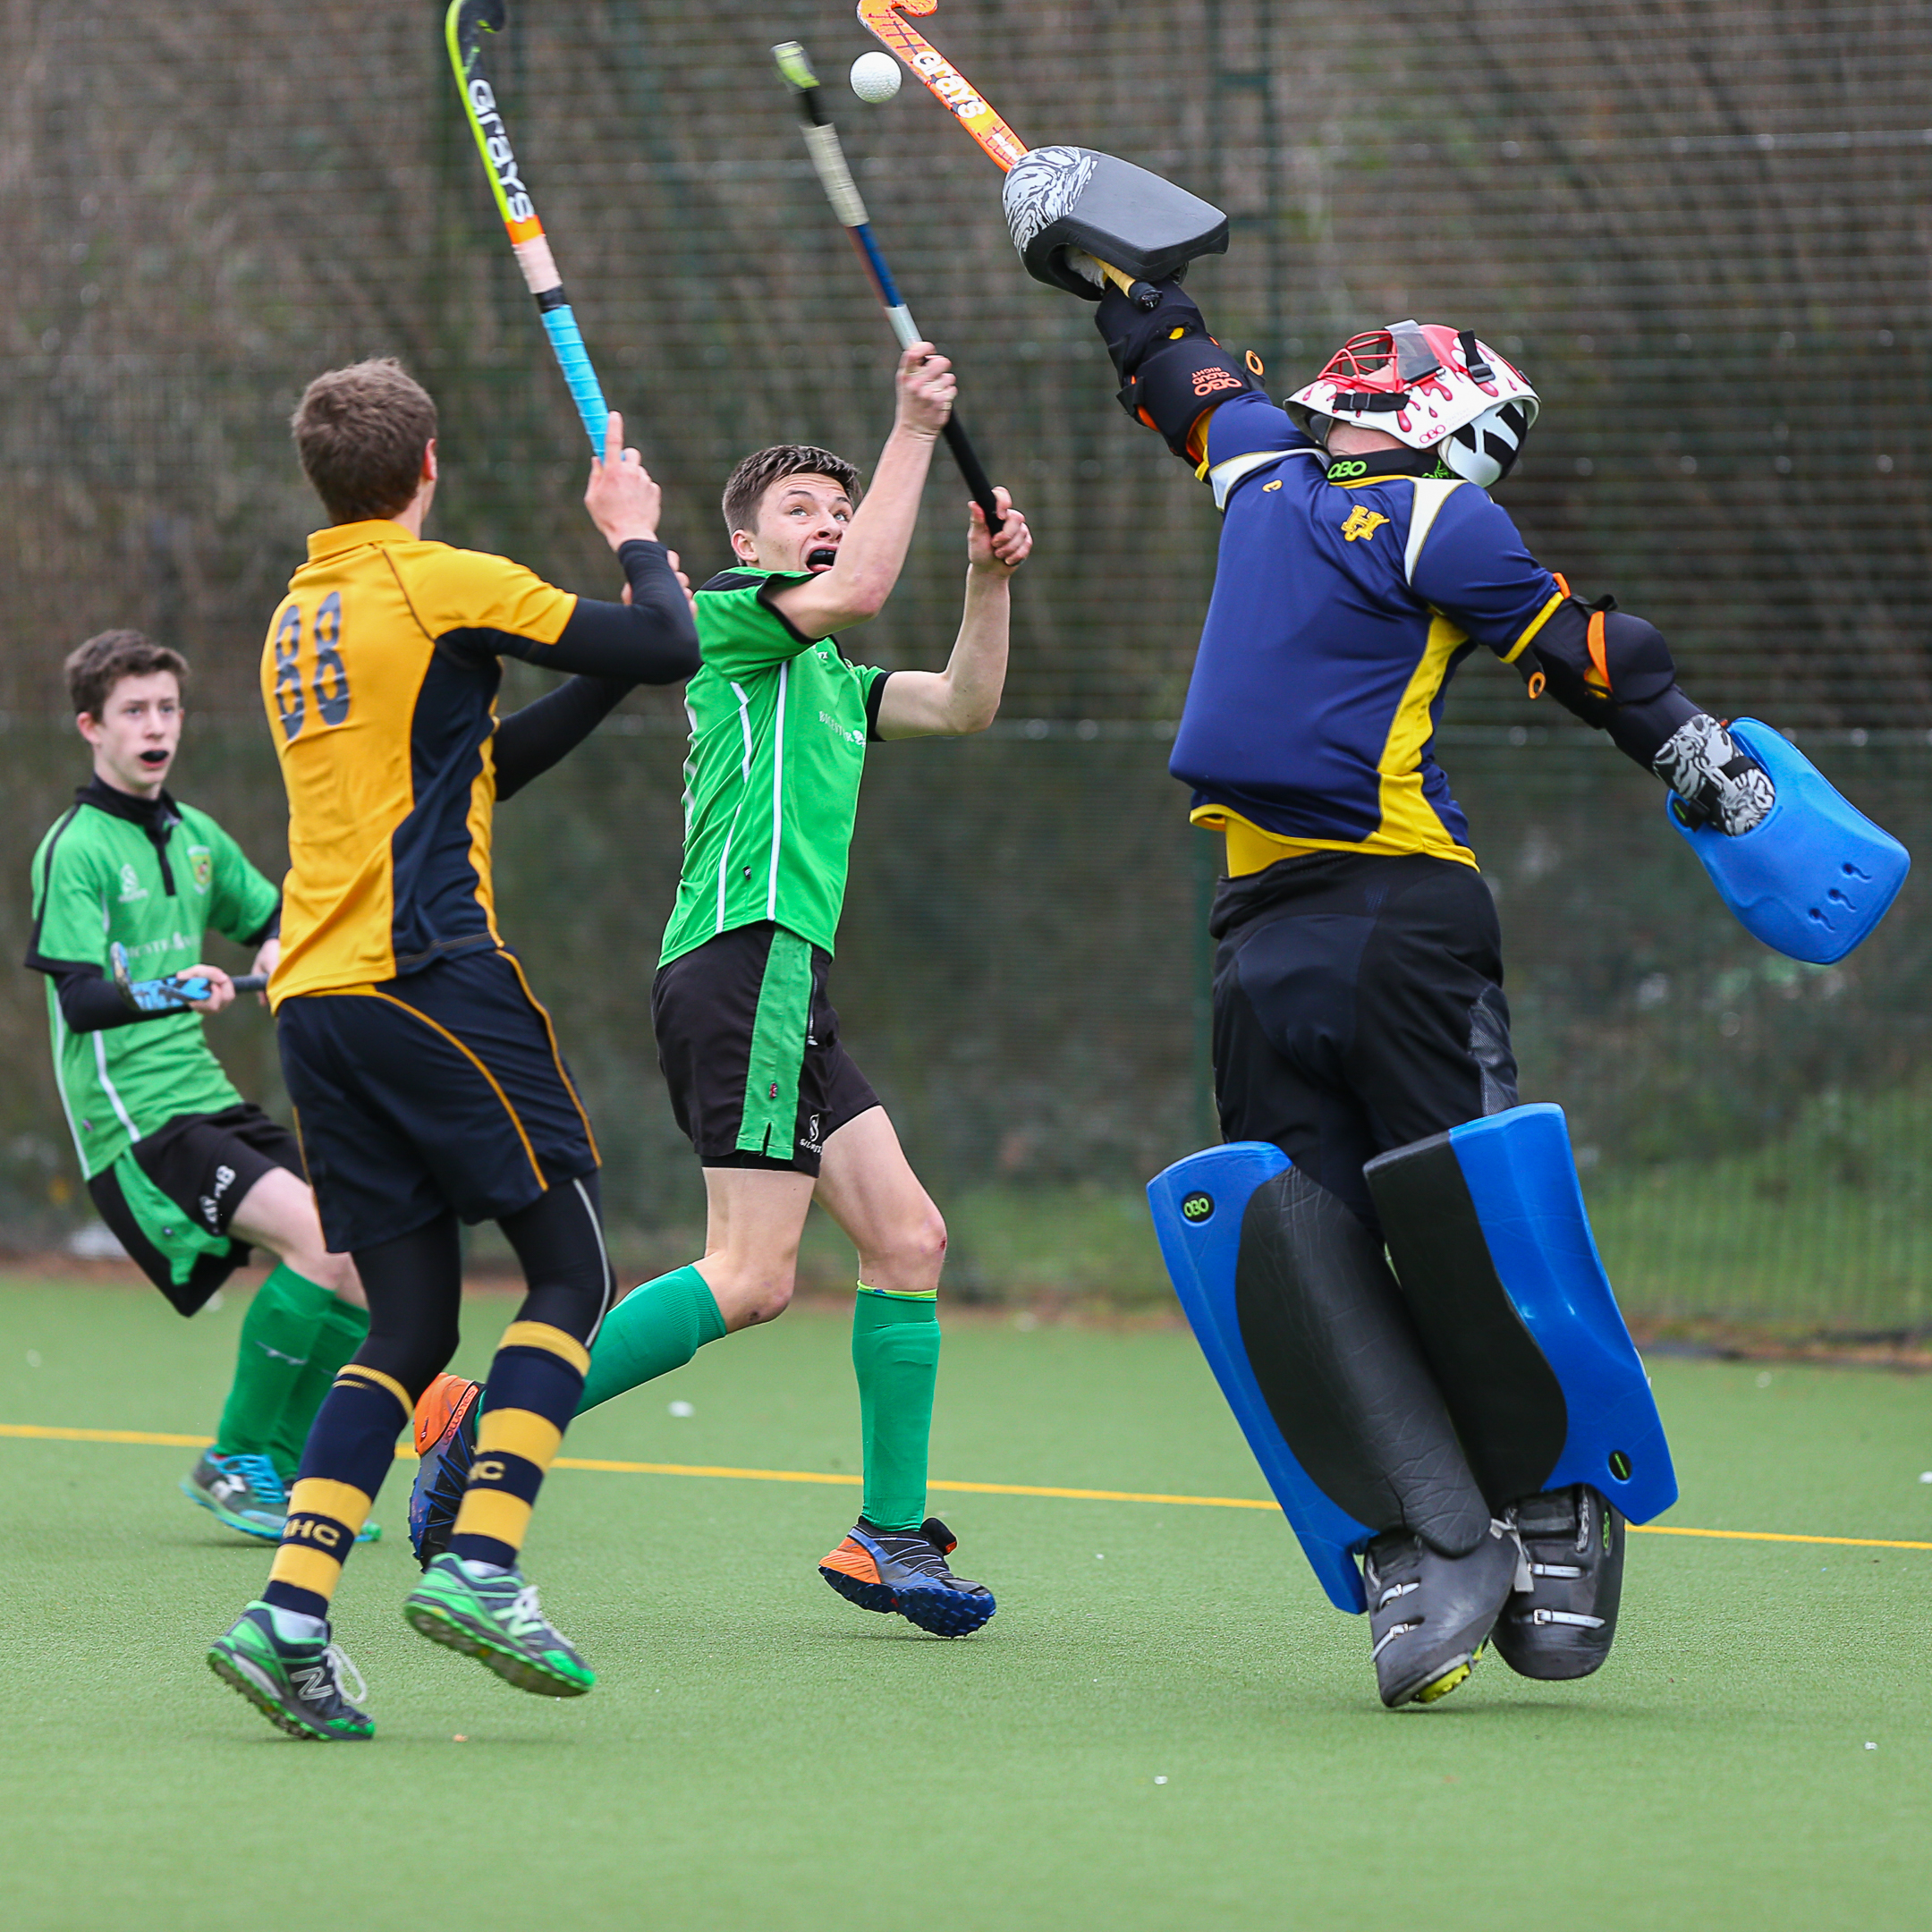 Bicester goalscorer Ollie Hartley battles for a high ball with the Henley goalkeeper during his side's 3-2 defeat in MBBO Division 1 Picture: Shaun Jackson